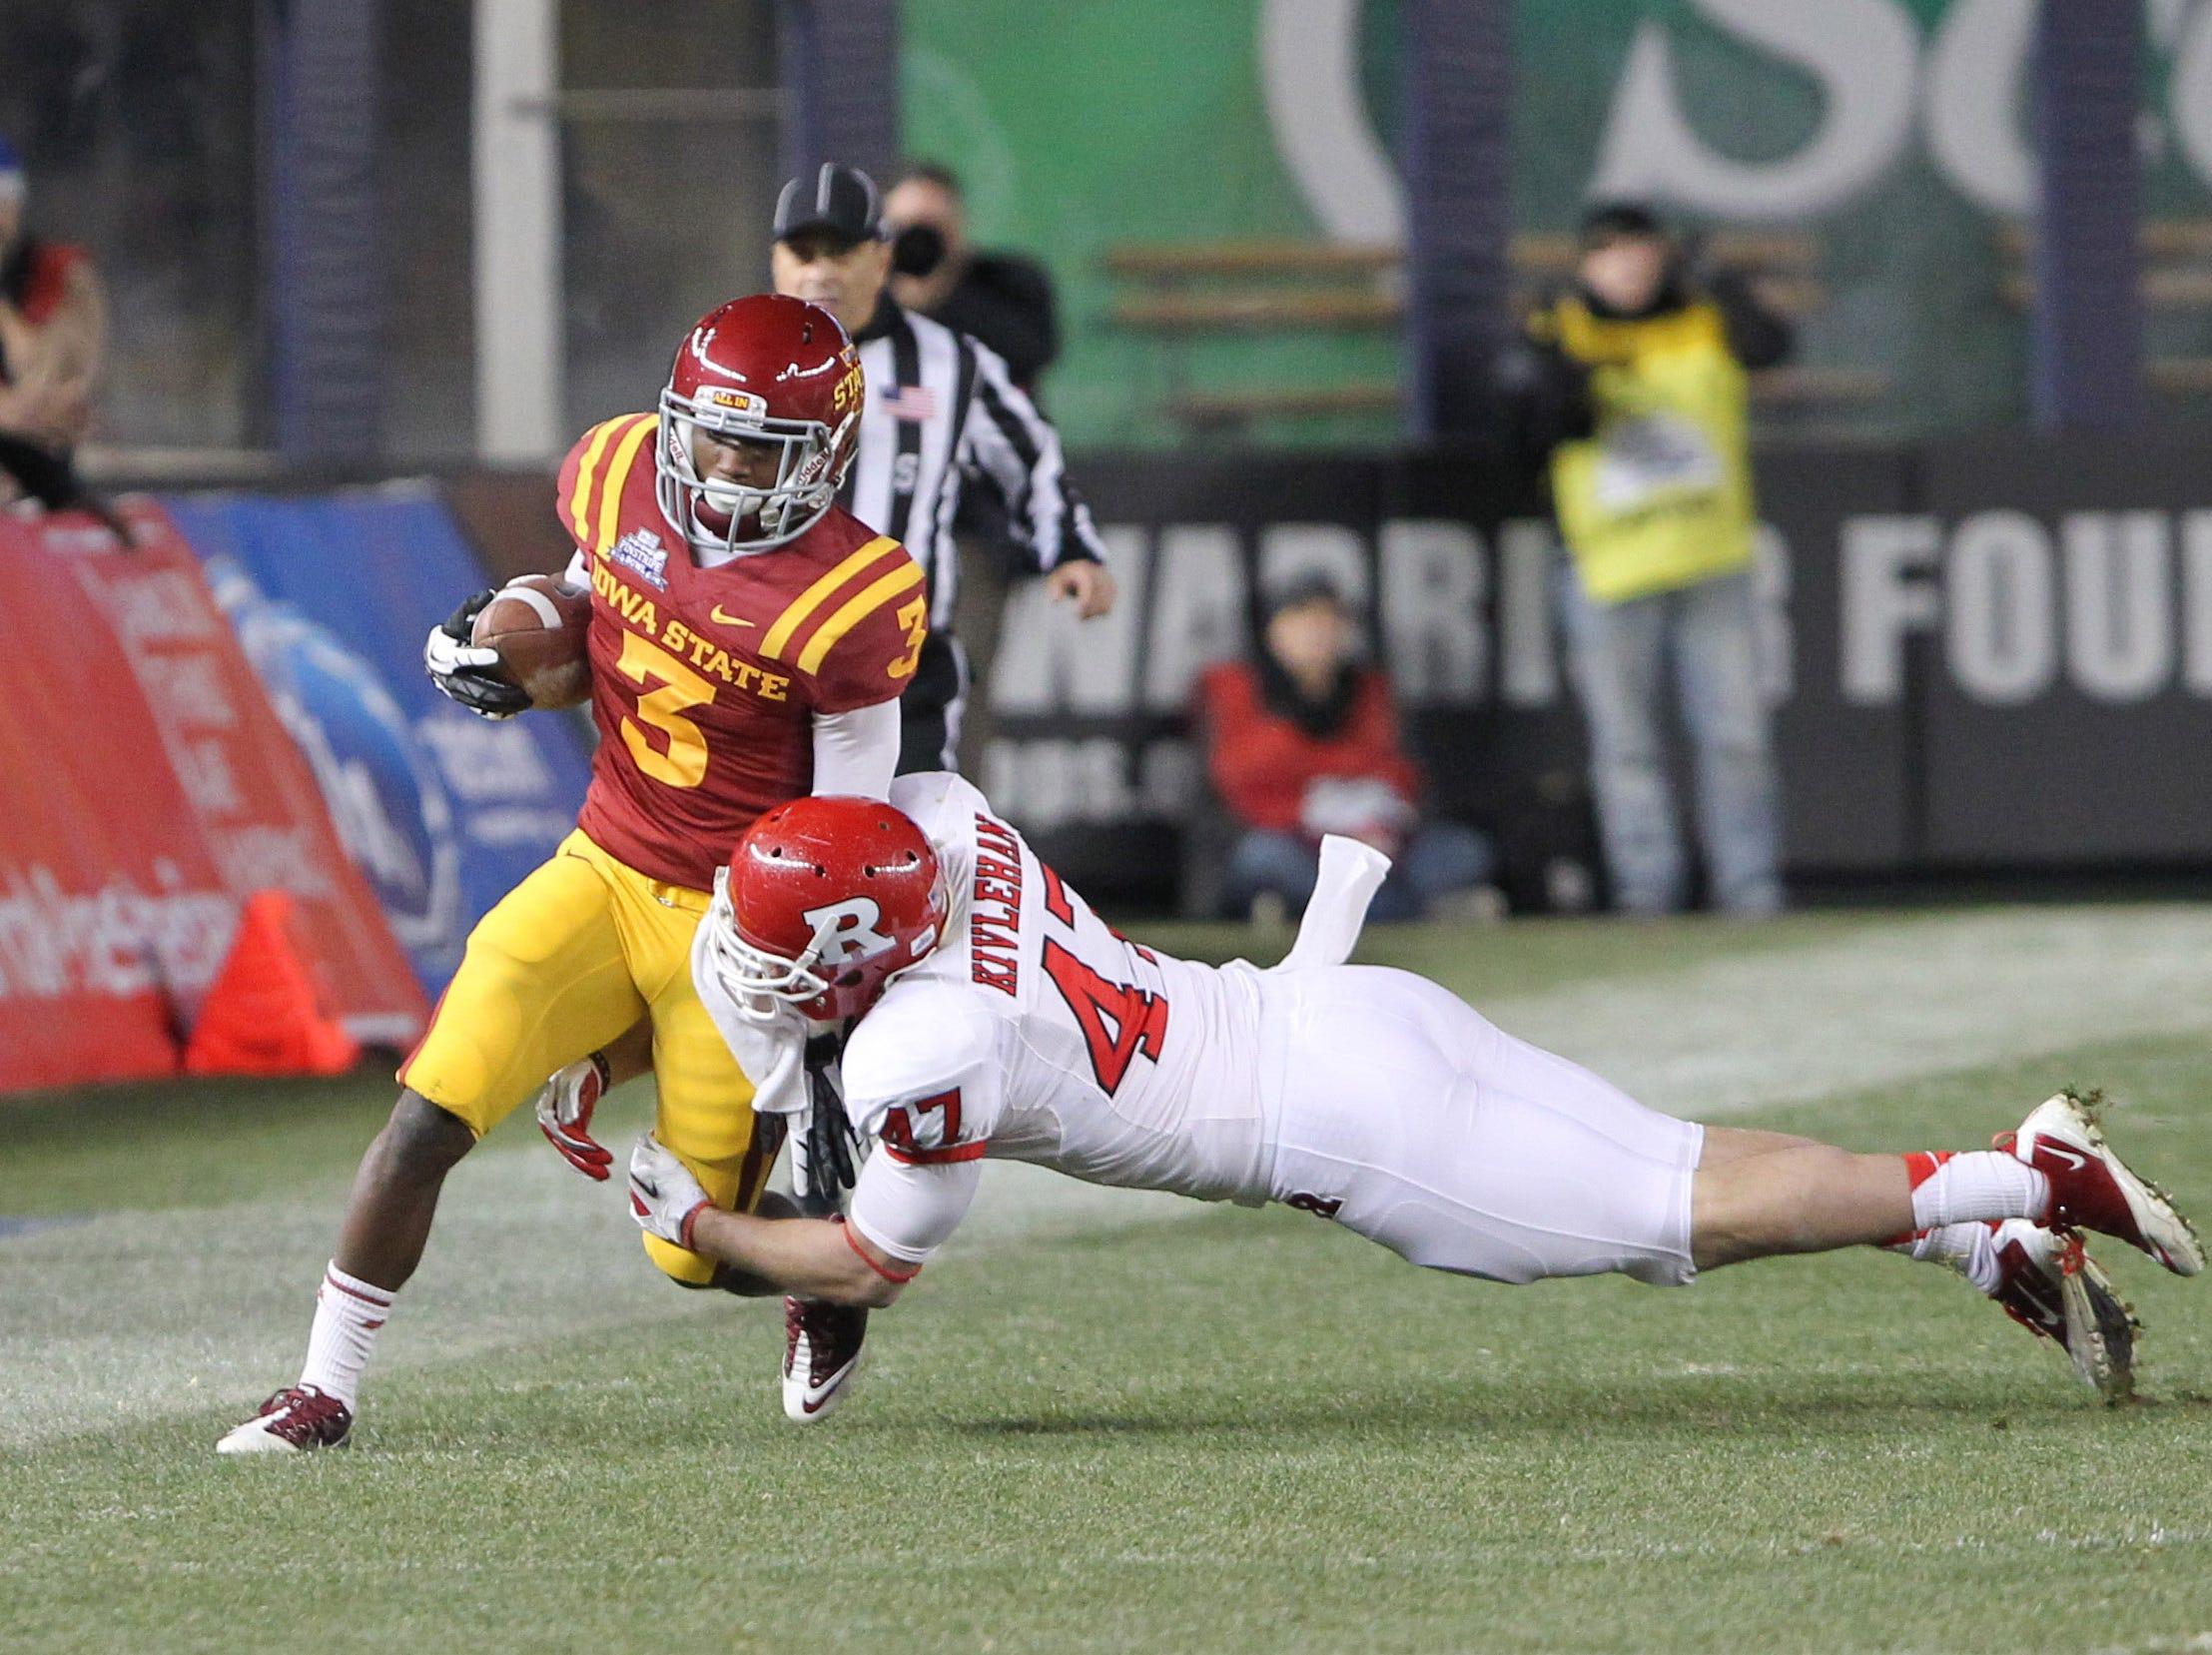 Iowa State Cyclones wide receiver Aaron Horne (3) carries the ball as Rutgers Scarlet Knights defensive back Patrick Kivlehan (47) comes in for the tackle during the third quarter of the 2011 Pinstripe Bowl at Yankee Stadium. Rutgers won 27-13.